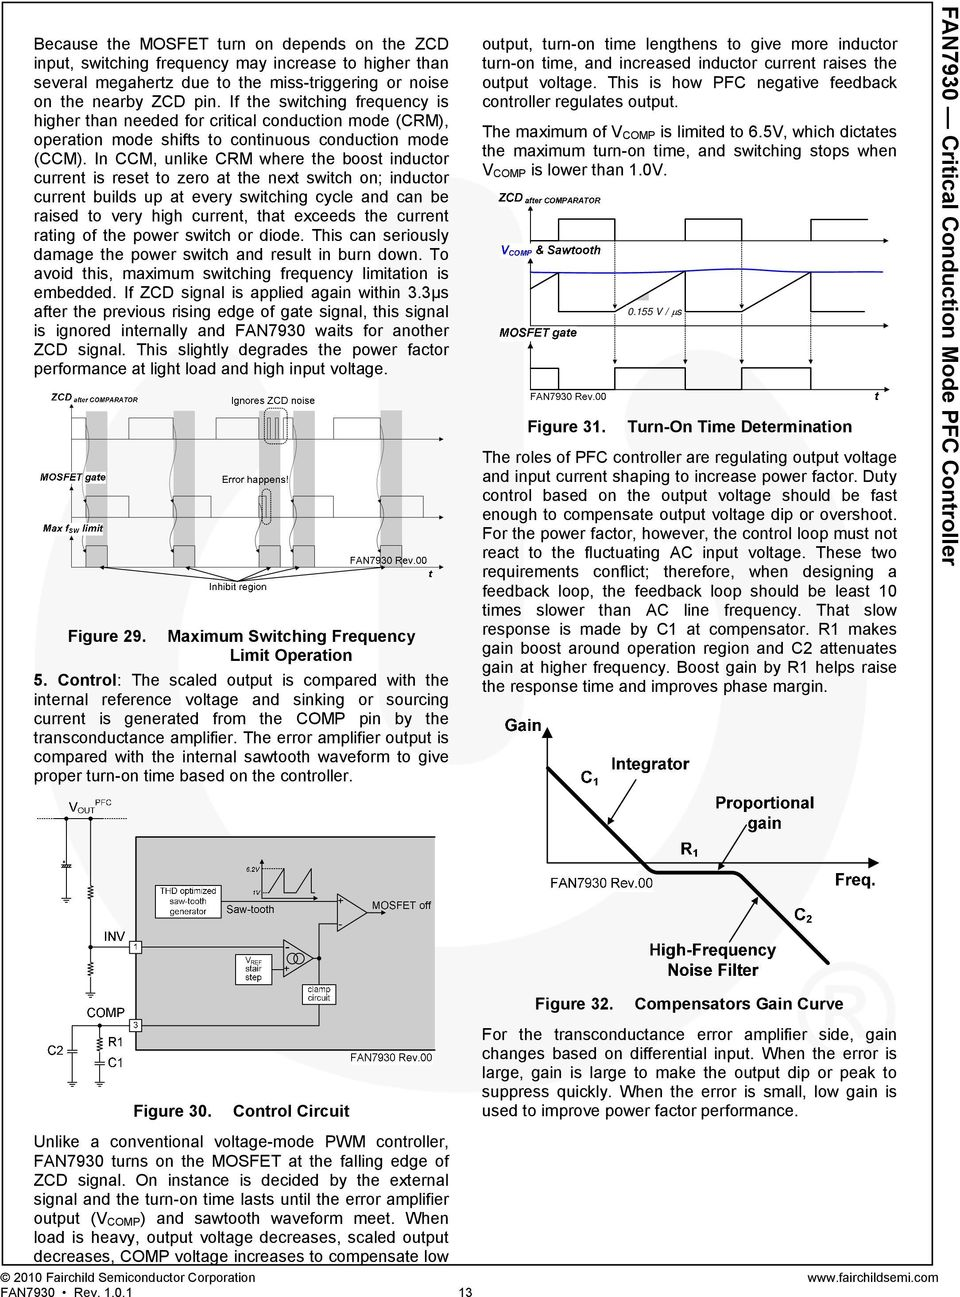 Fan7930 Critical Conduction Mode Pfc Controller Pdf These Solenoid Voltage And Current Waveforms From The Figure 1 Circuit In Ccm Unlike Crm Where Boost Inductor Is Reset To Zero At